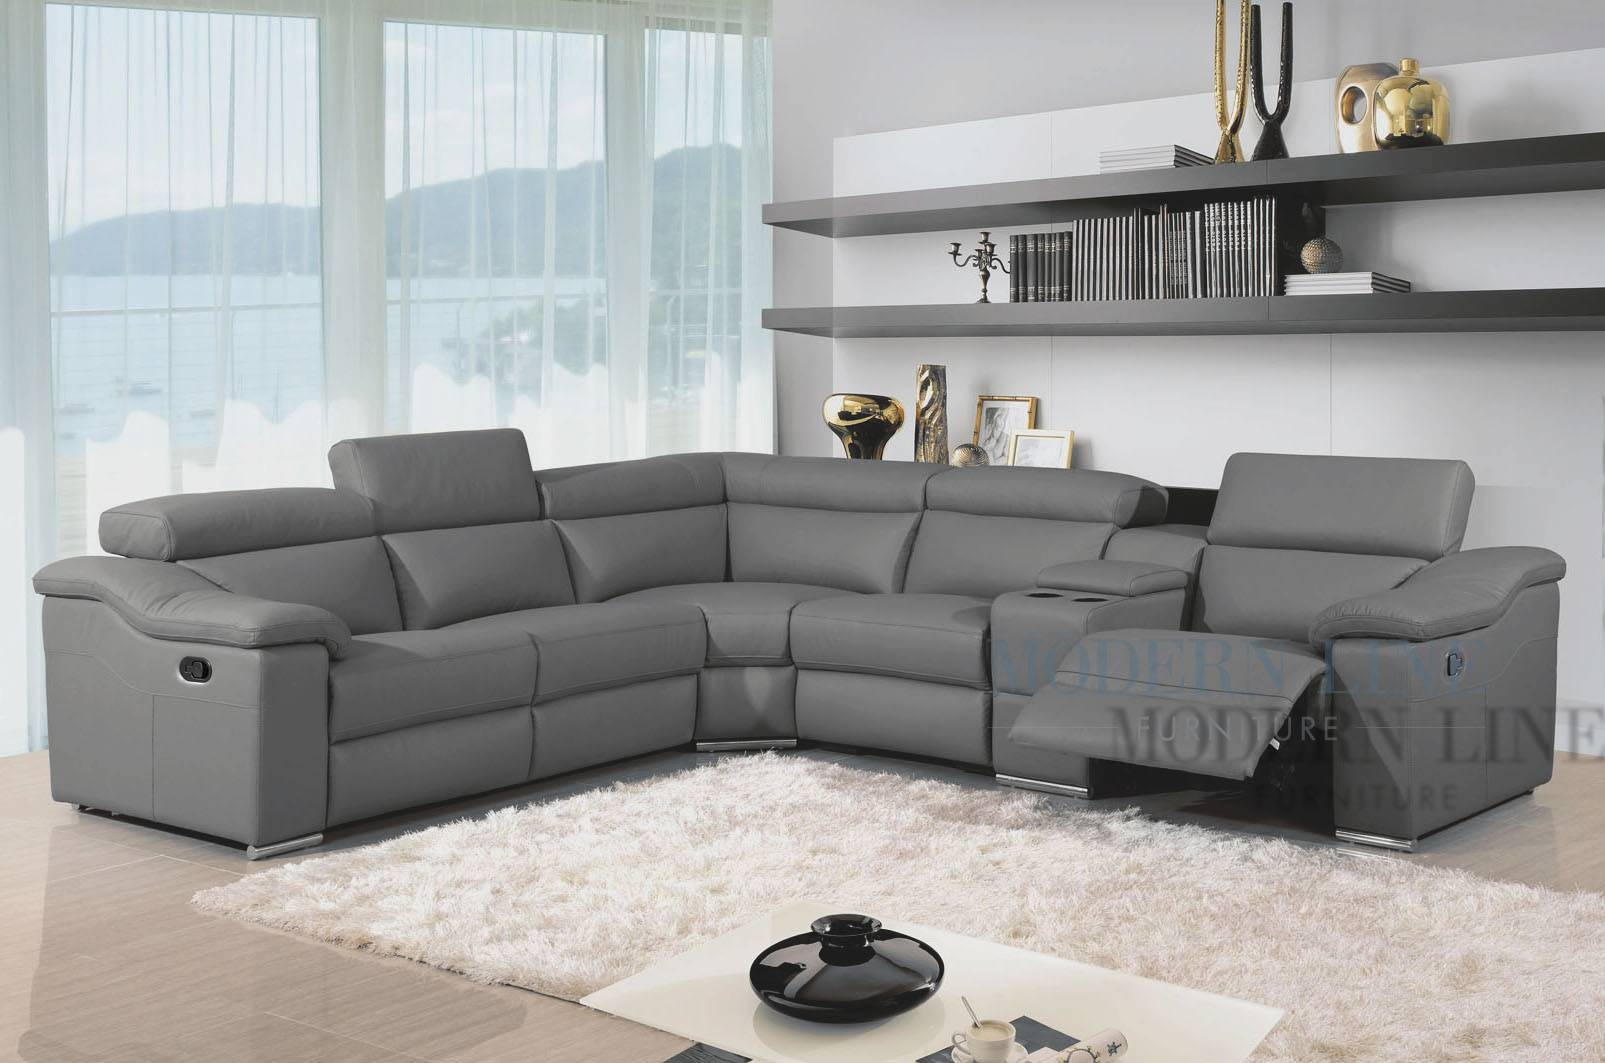 Decor: Rooms To Go Cindy Crawford For Classy Living Room Design throughout Cindy Crawford Metropolis Sofas (Image 6 of 15)